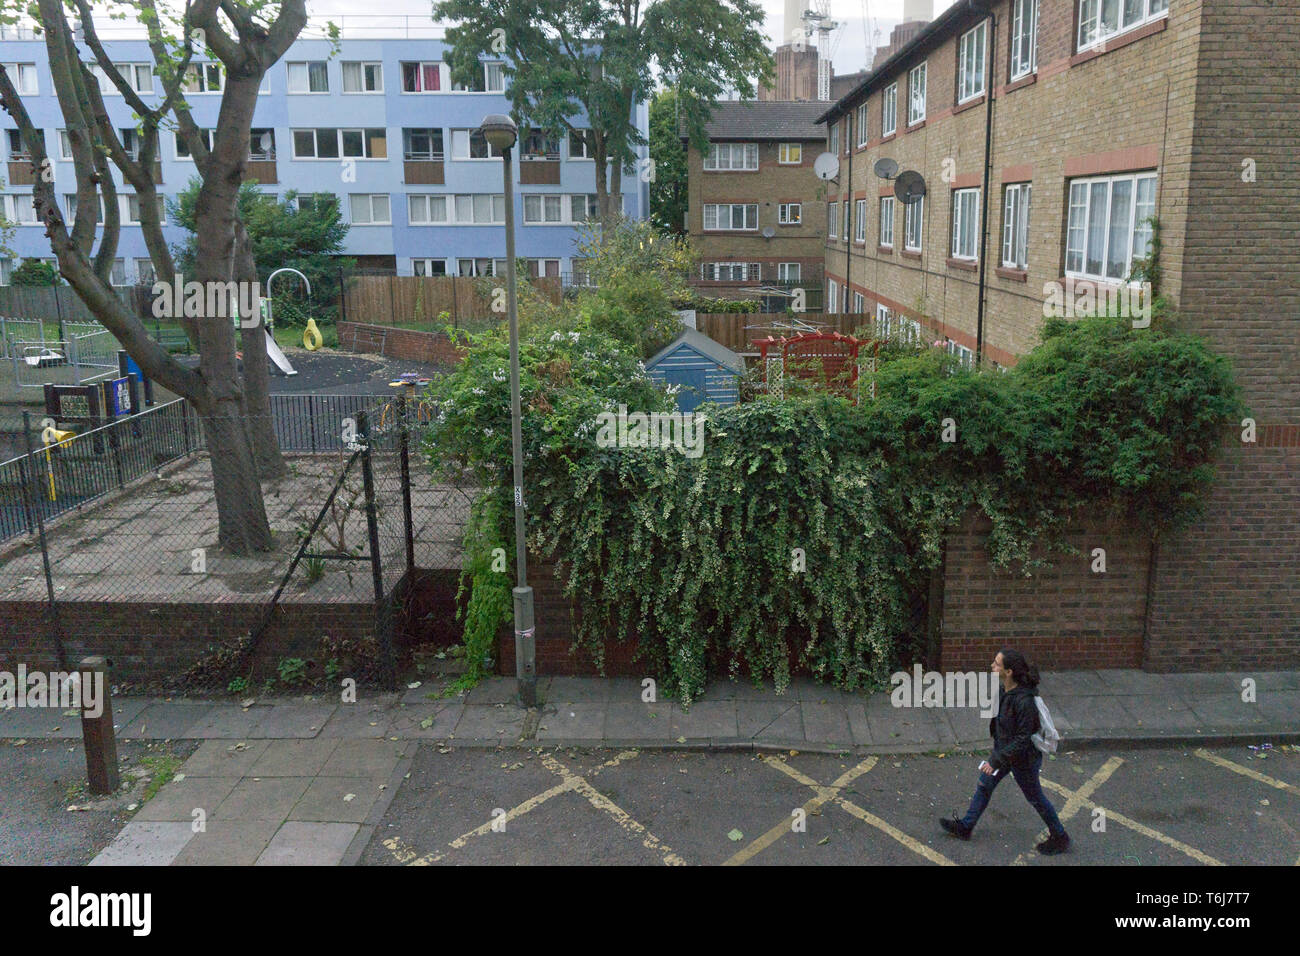 A children's playground is pictured in Seldon House estate near Battersea Power Station on September 20, 2017. Stock Photo